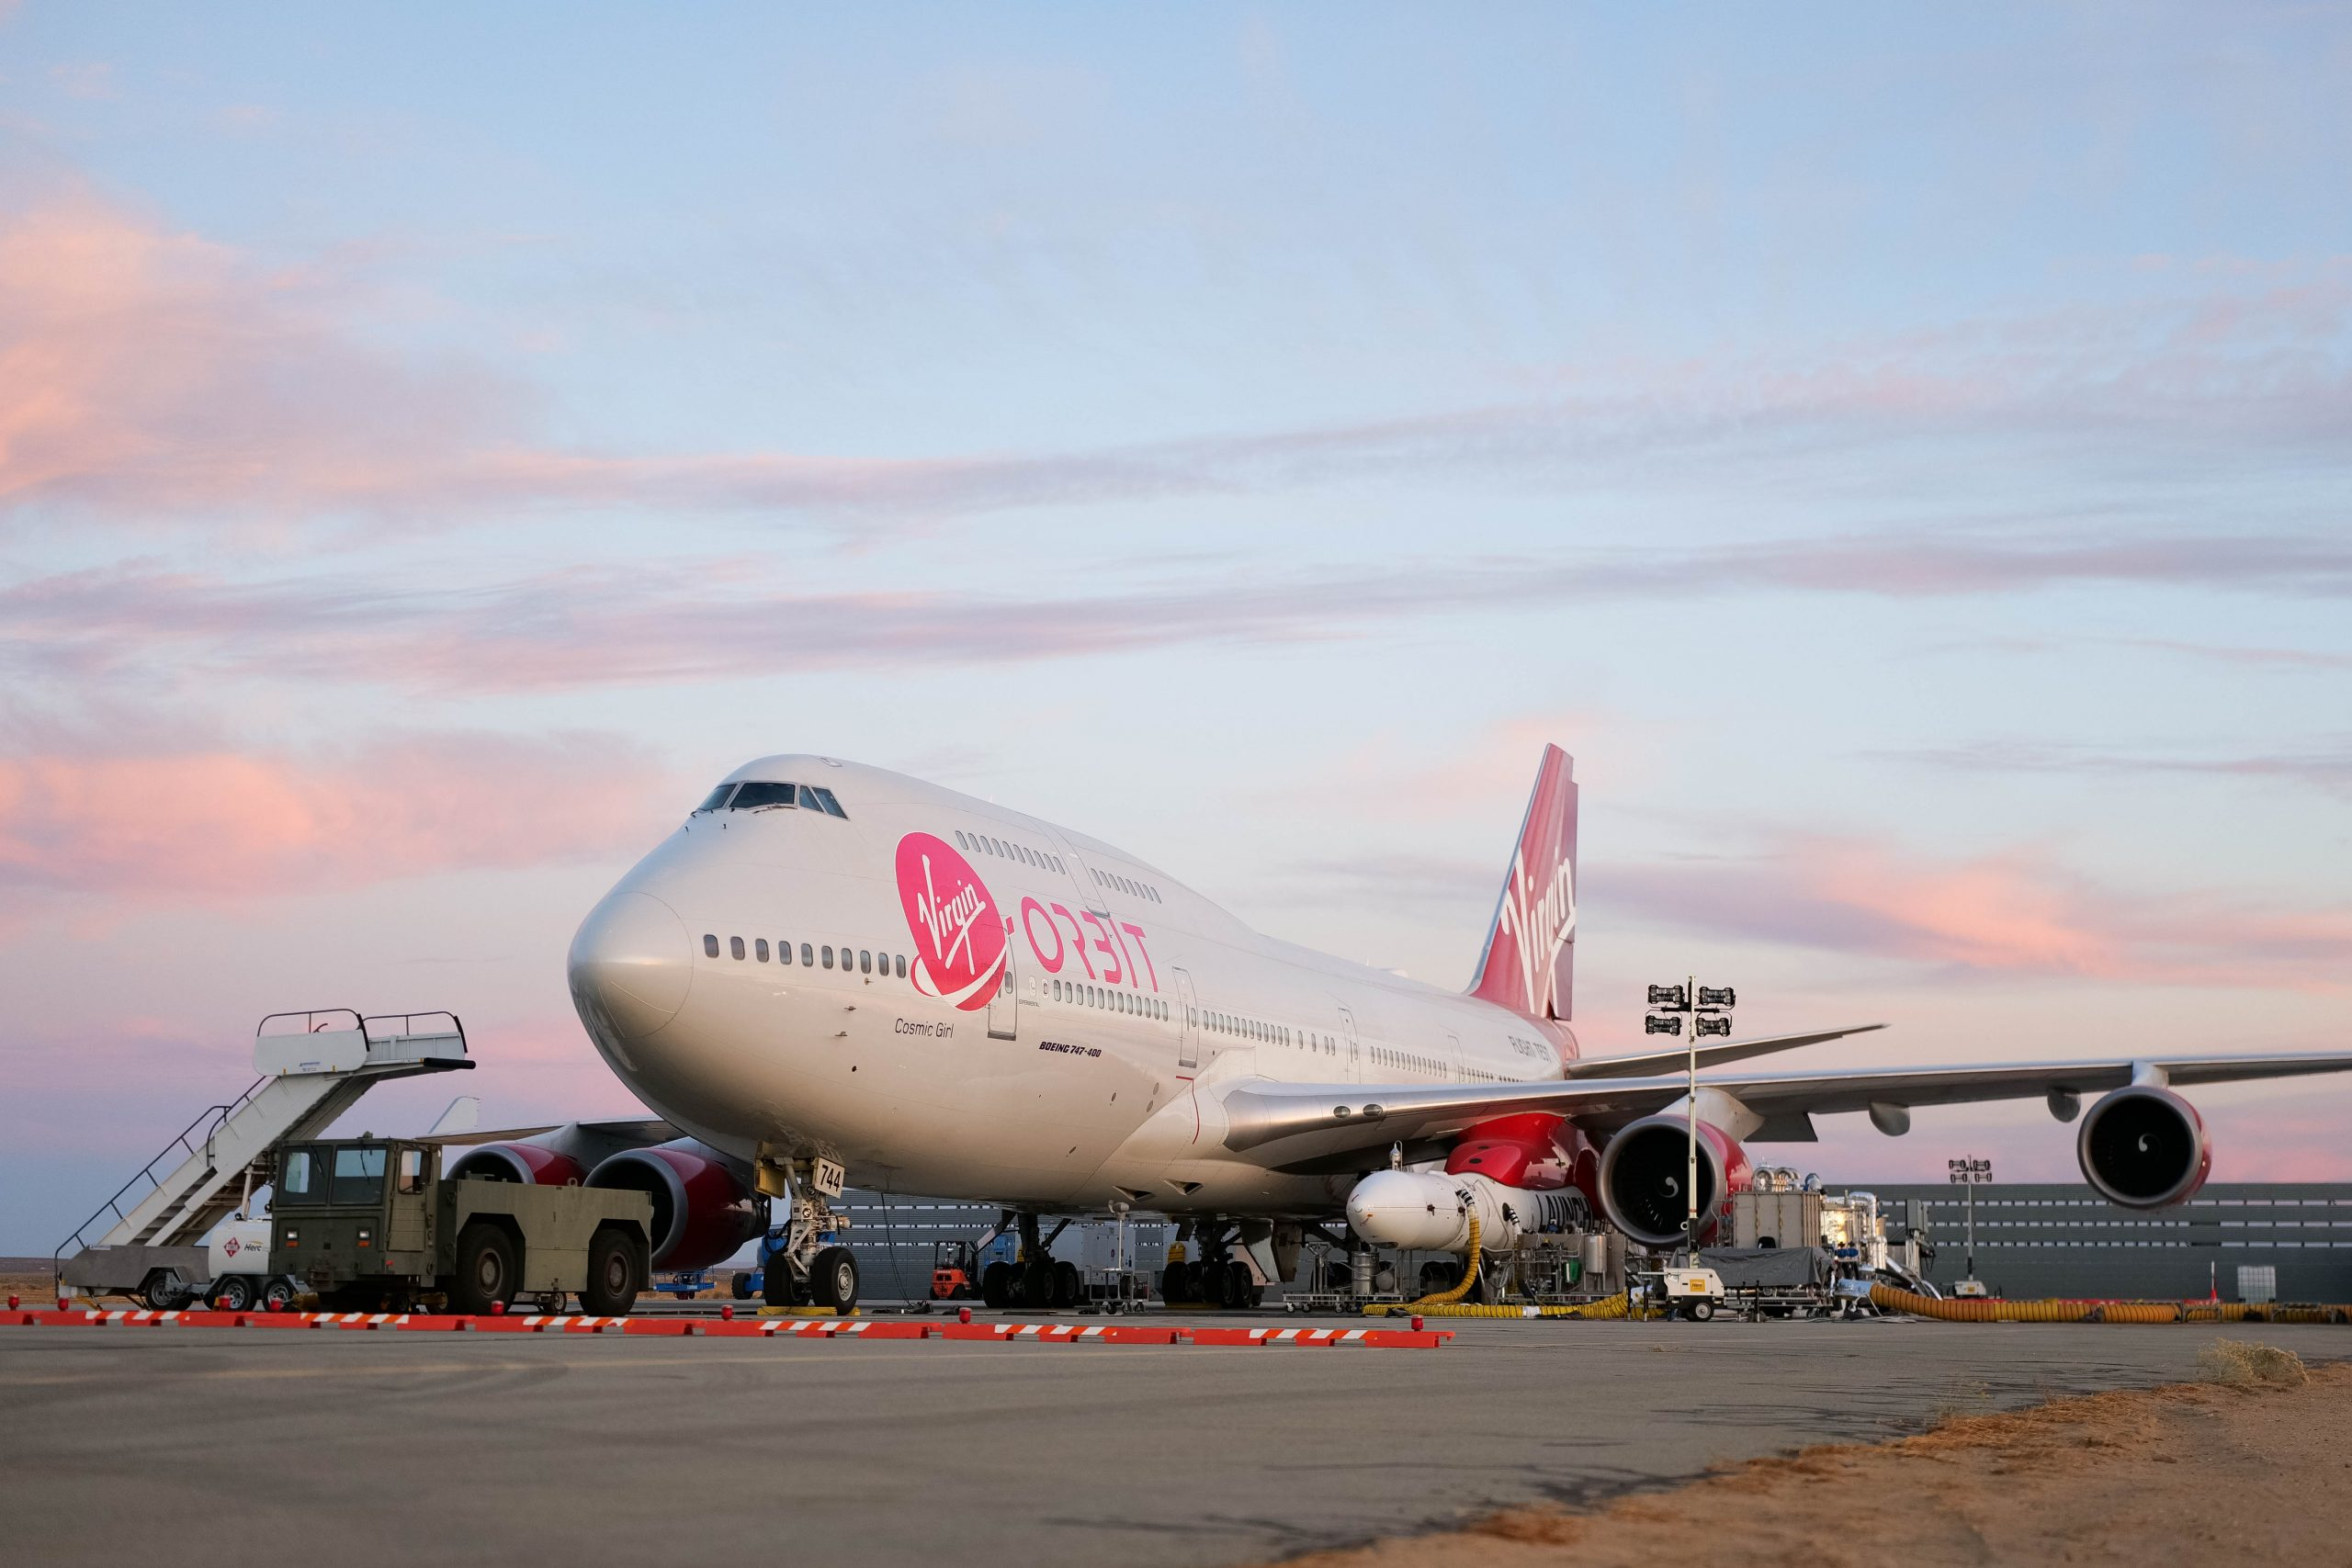 Virgin Orbit's LauncherOne system undergoes final preparations on a taxiway at Mojave Air and Space Port ahead of the company's Launch Demo 2 mission. Taken in late December 2020. Photo: Virgin Orbit/Greg Robinson.